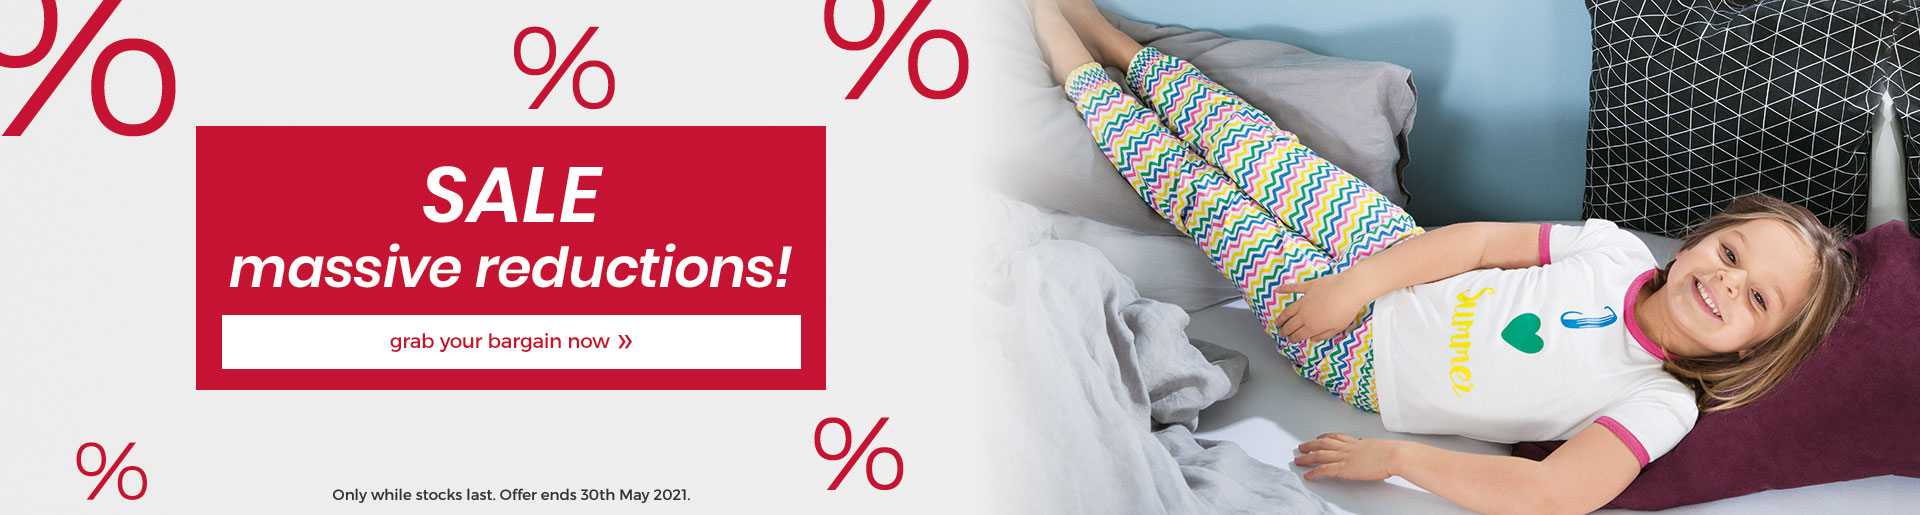 Sale - extremely hard reduced underwear & loungewear!